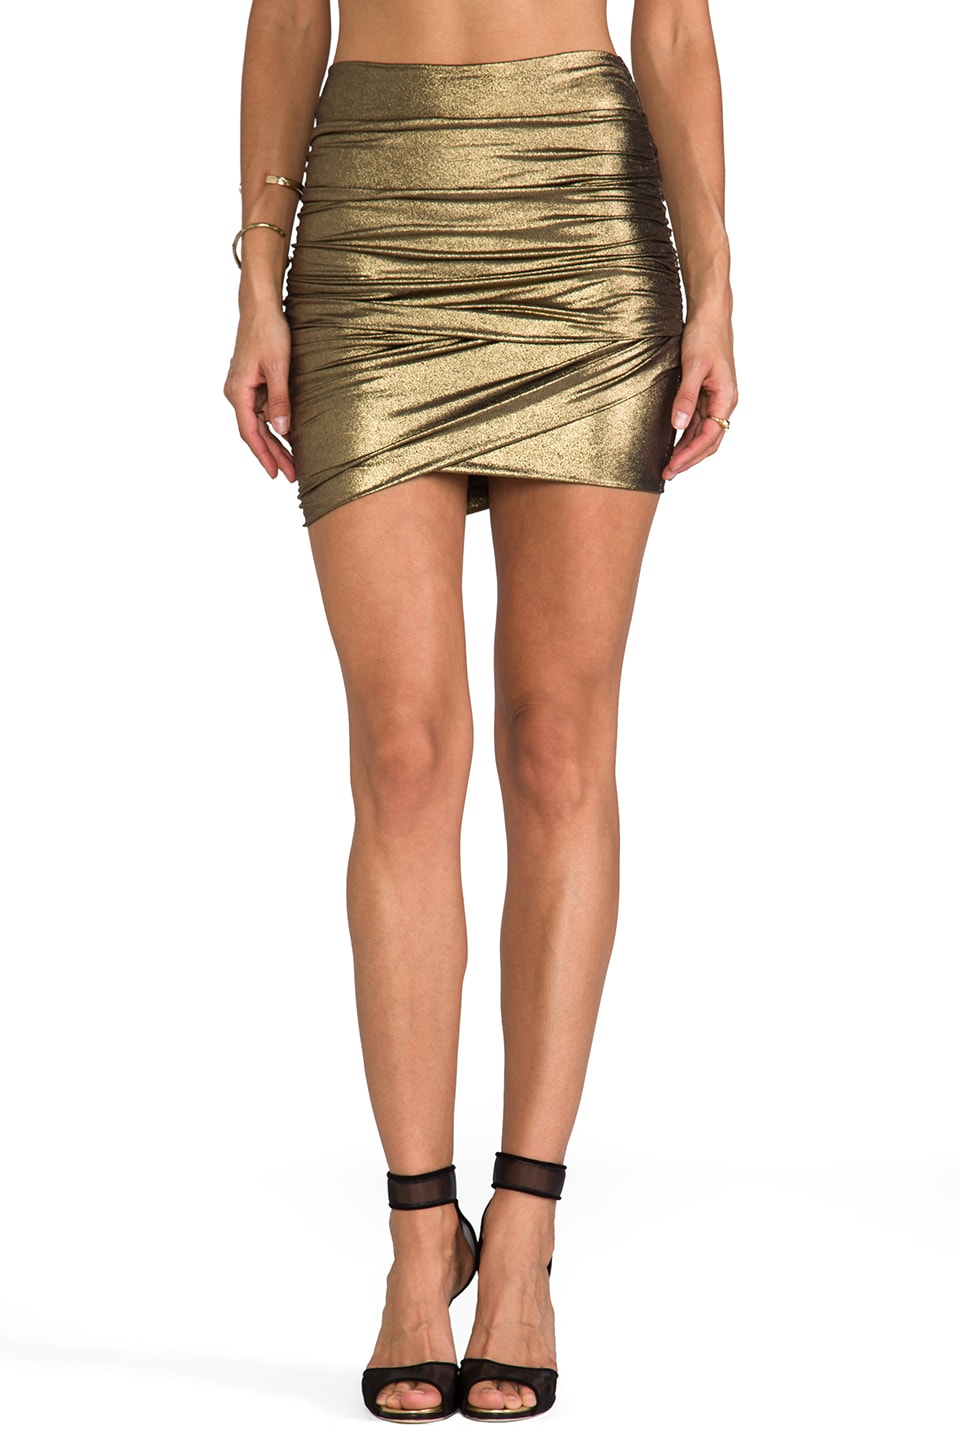 T-Bags LosAngeles Mini Skirt in Gold Metallic